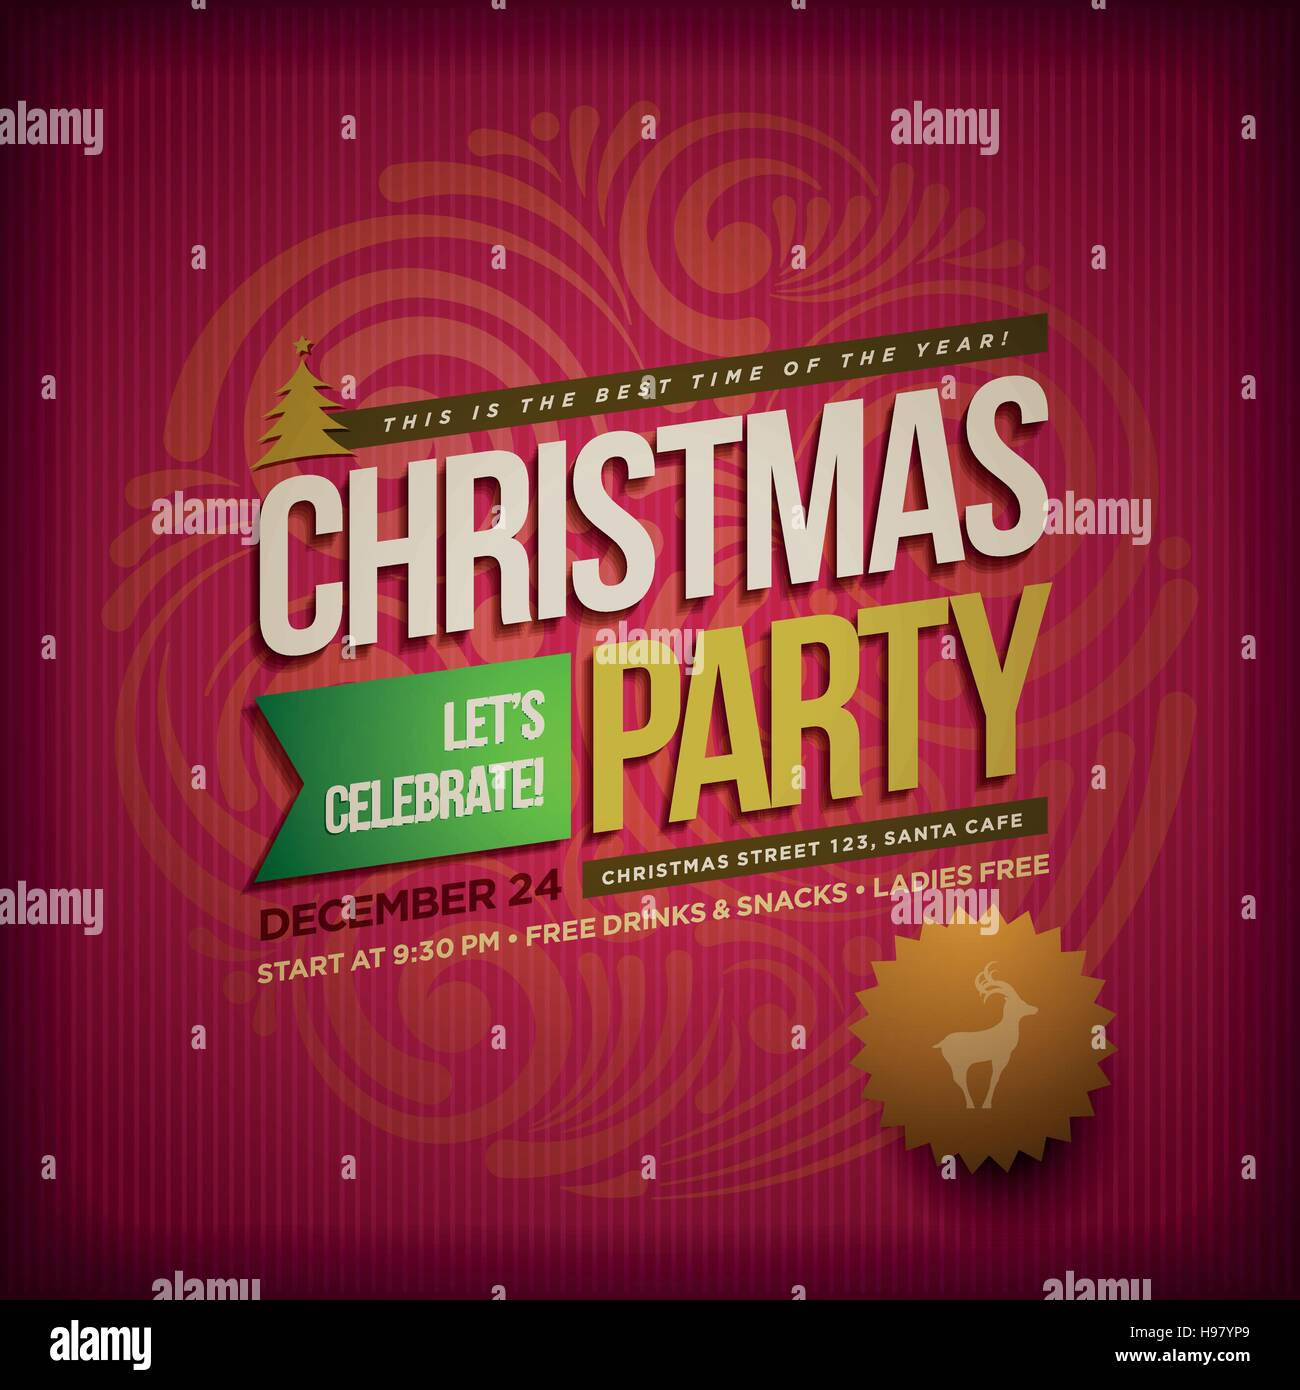 Poster design keywords - Stock Vector Vector Christmas Party Poster Design Template Christmas Related Ornaments Objects On Color Background Elements Are Layered Separately In